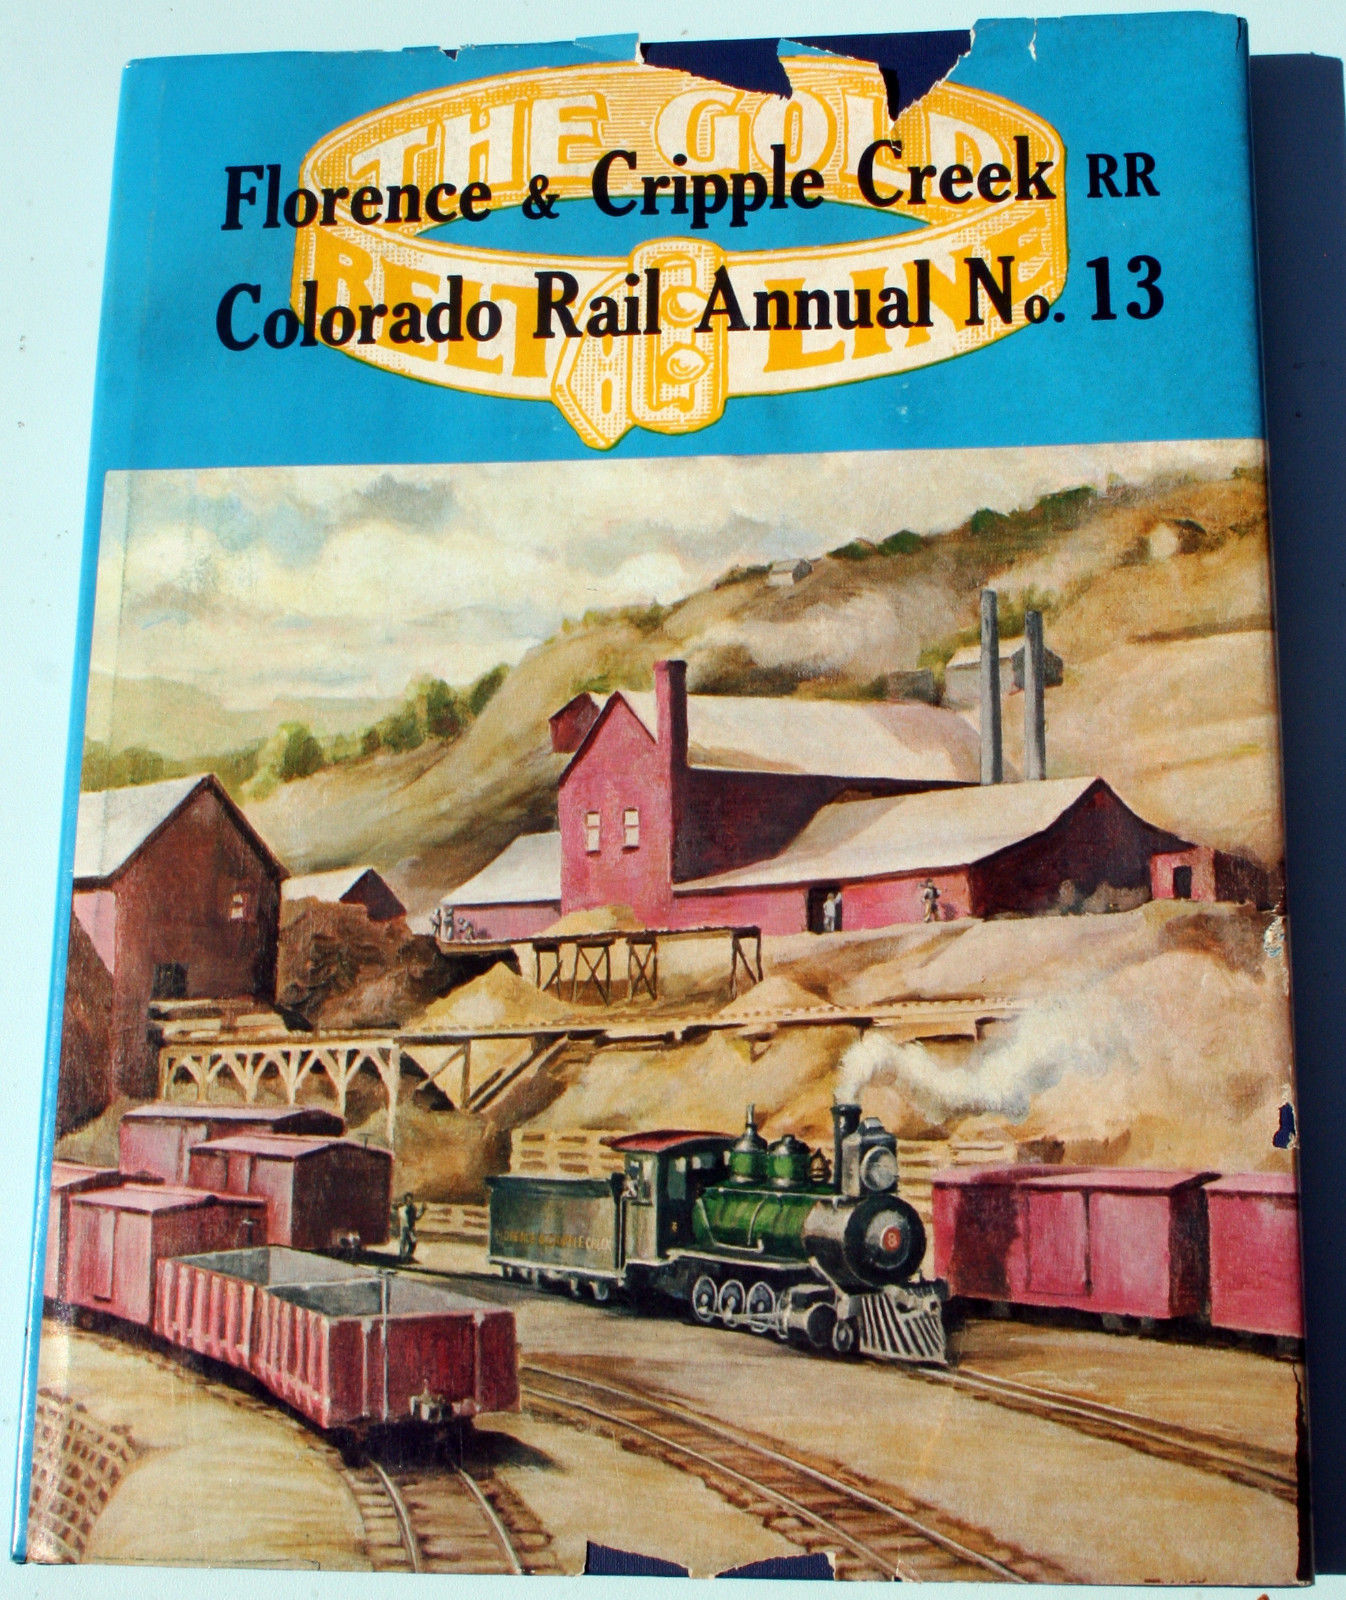 Primary image for Gold Belt Line: Florence & Cripple Creek RR CO Rail Annual #13 Trivis Wilkins FP